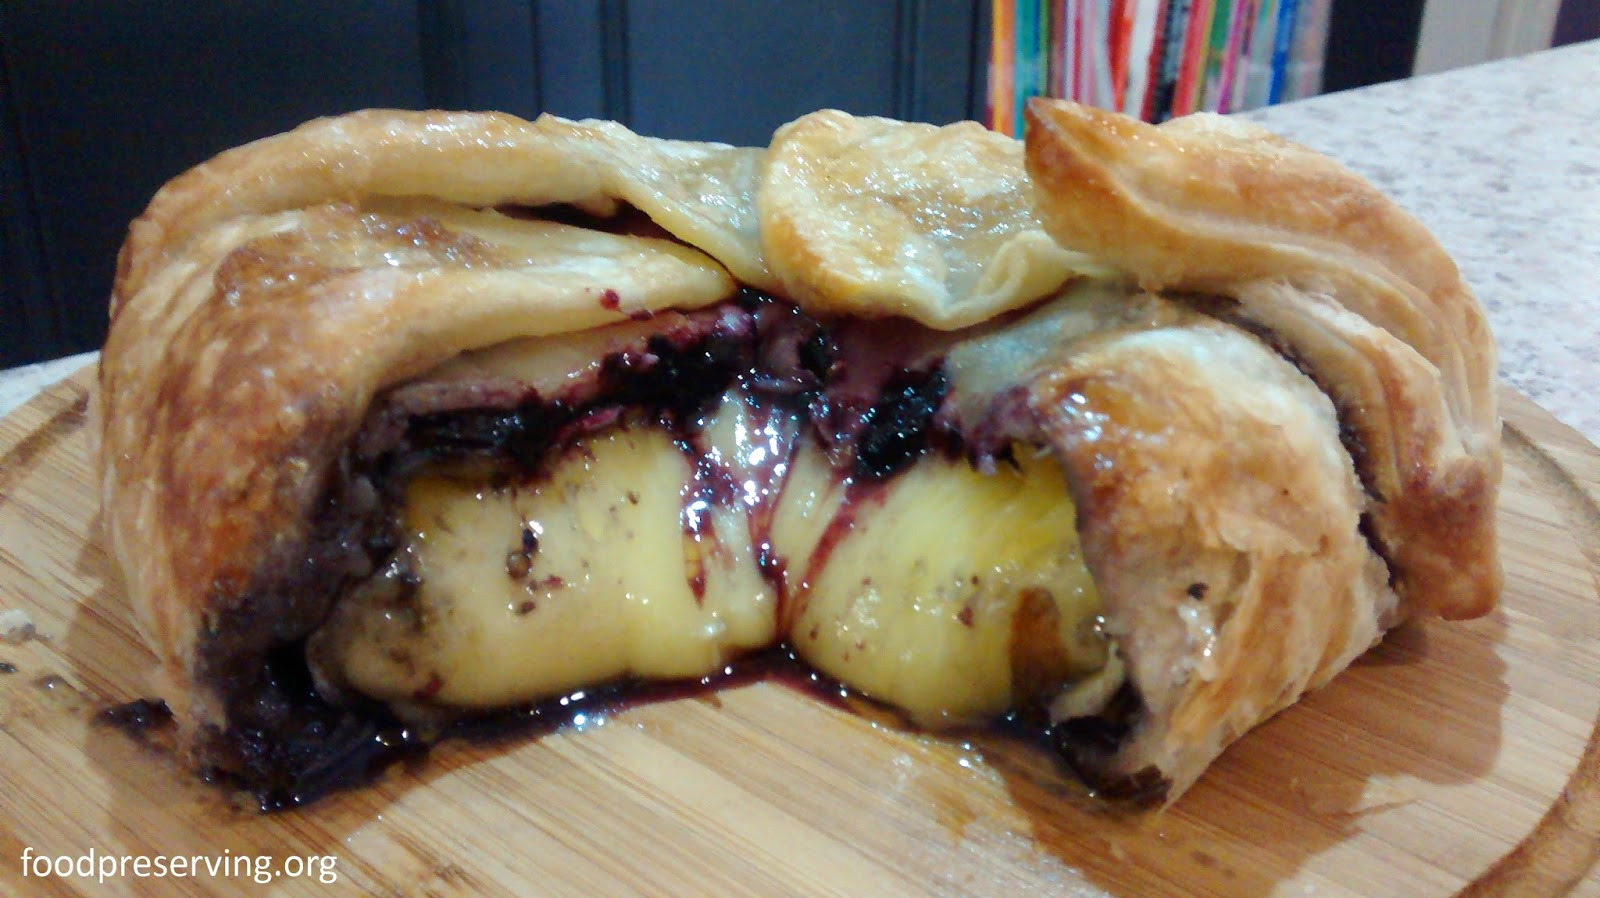 FOOD PRESERVING: Baked Brie